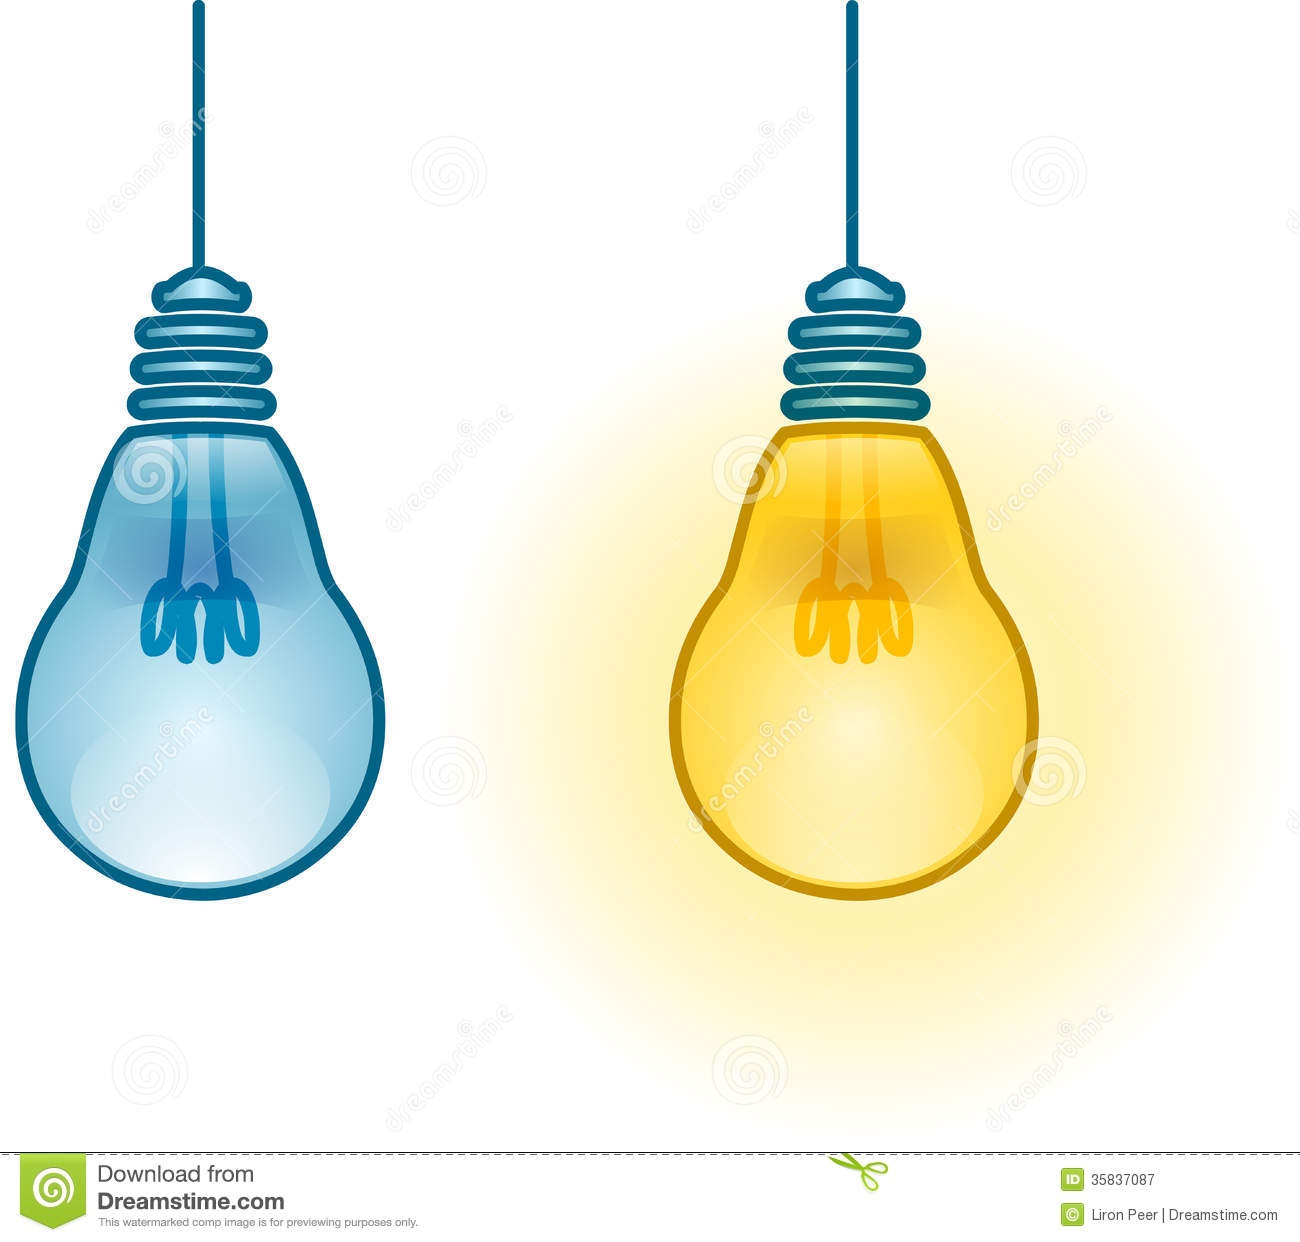 Free clipart turning off lights picture royalty free stock Turn Off Lights Clipart#1961323 picture royalty free stock